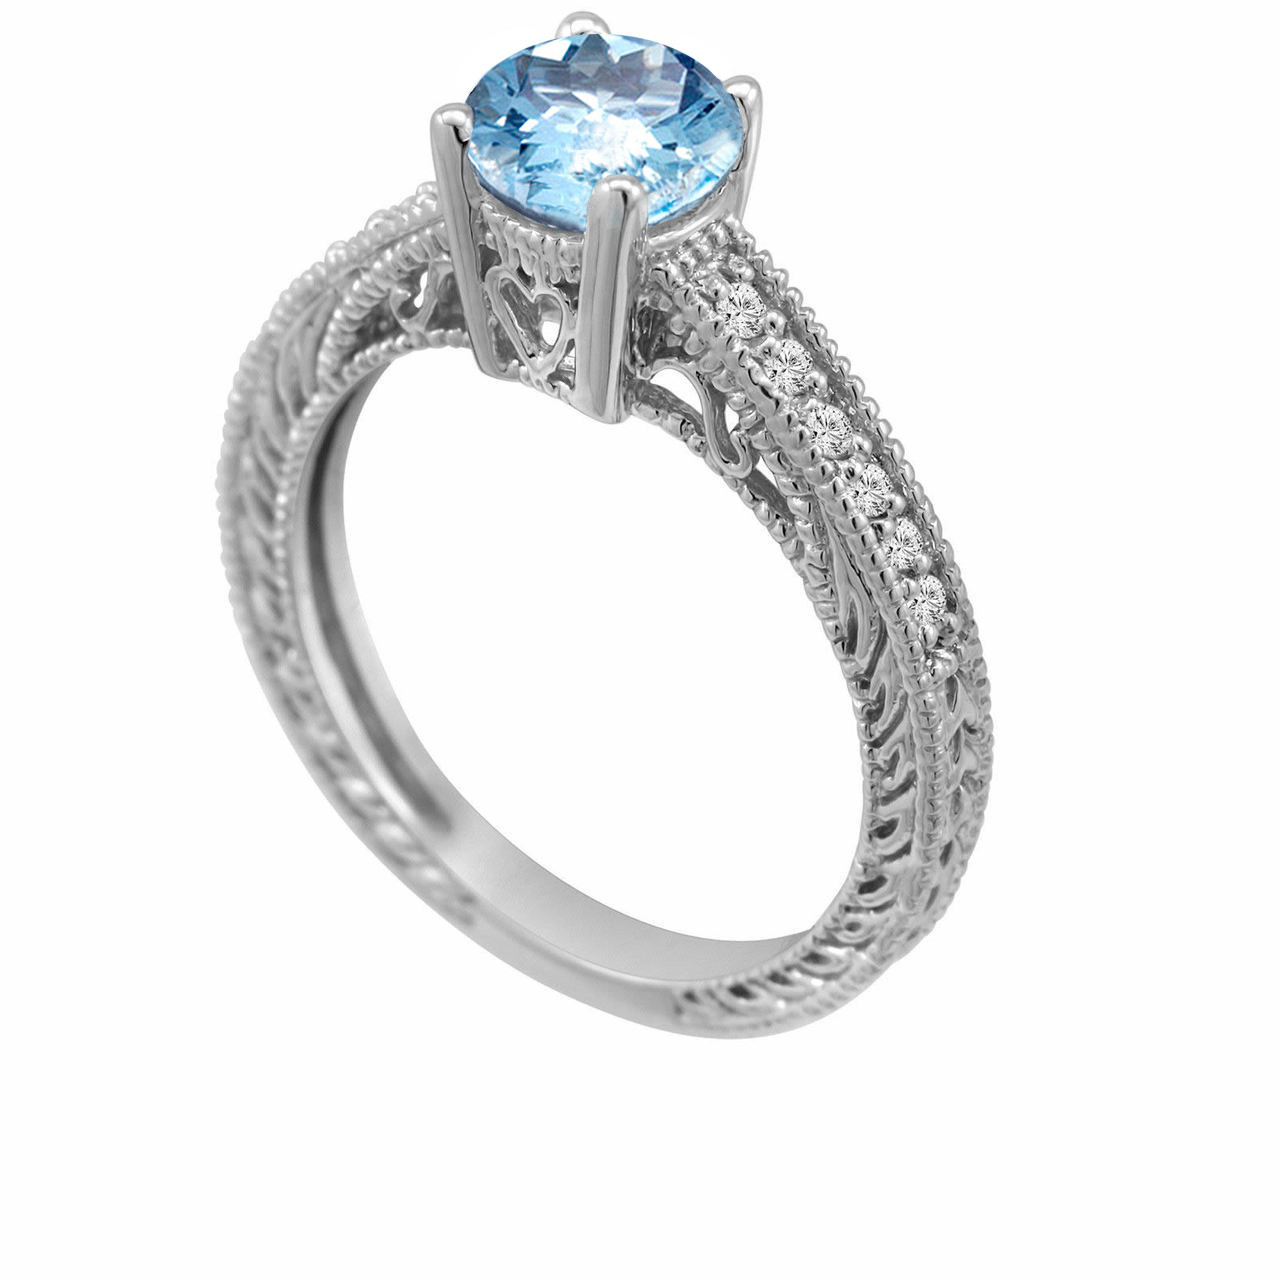 Handcrafted In The Usa: Vintage Aquamarine Wedding Ring At Websimilar.org